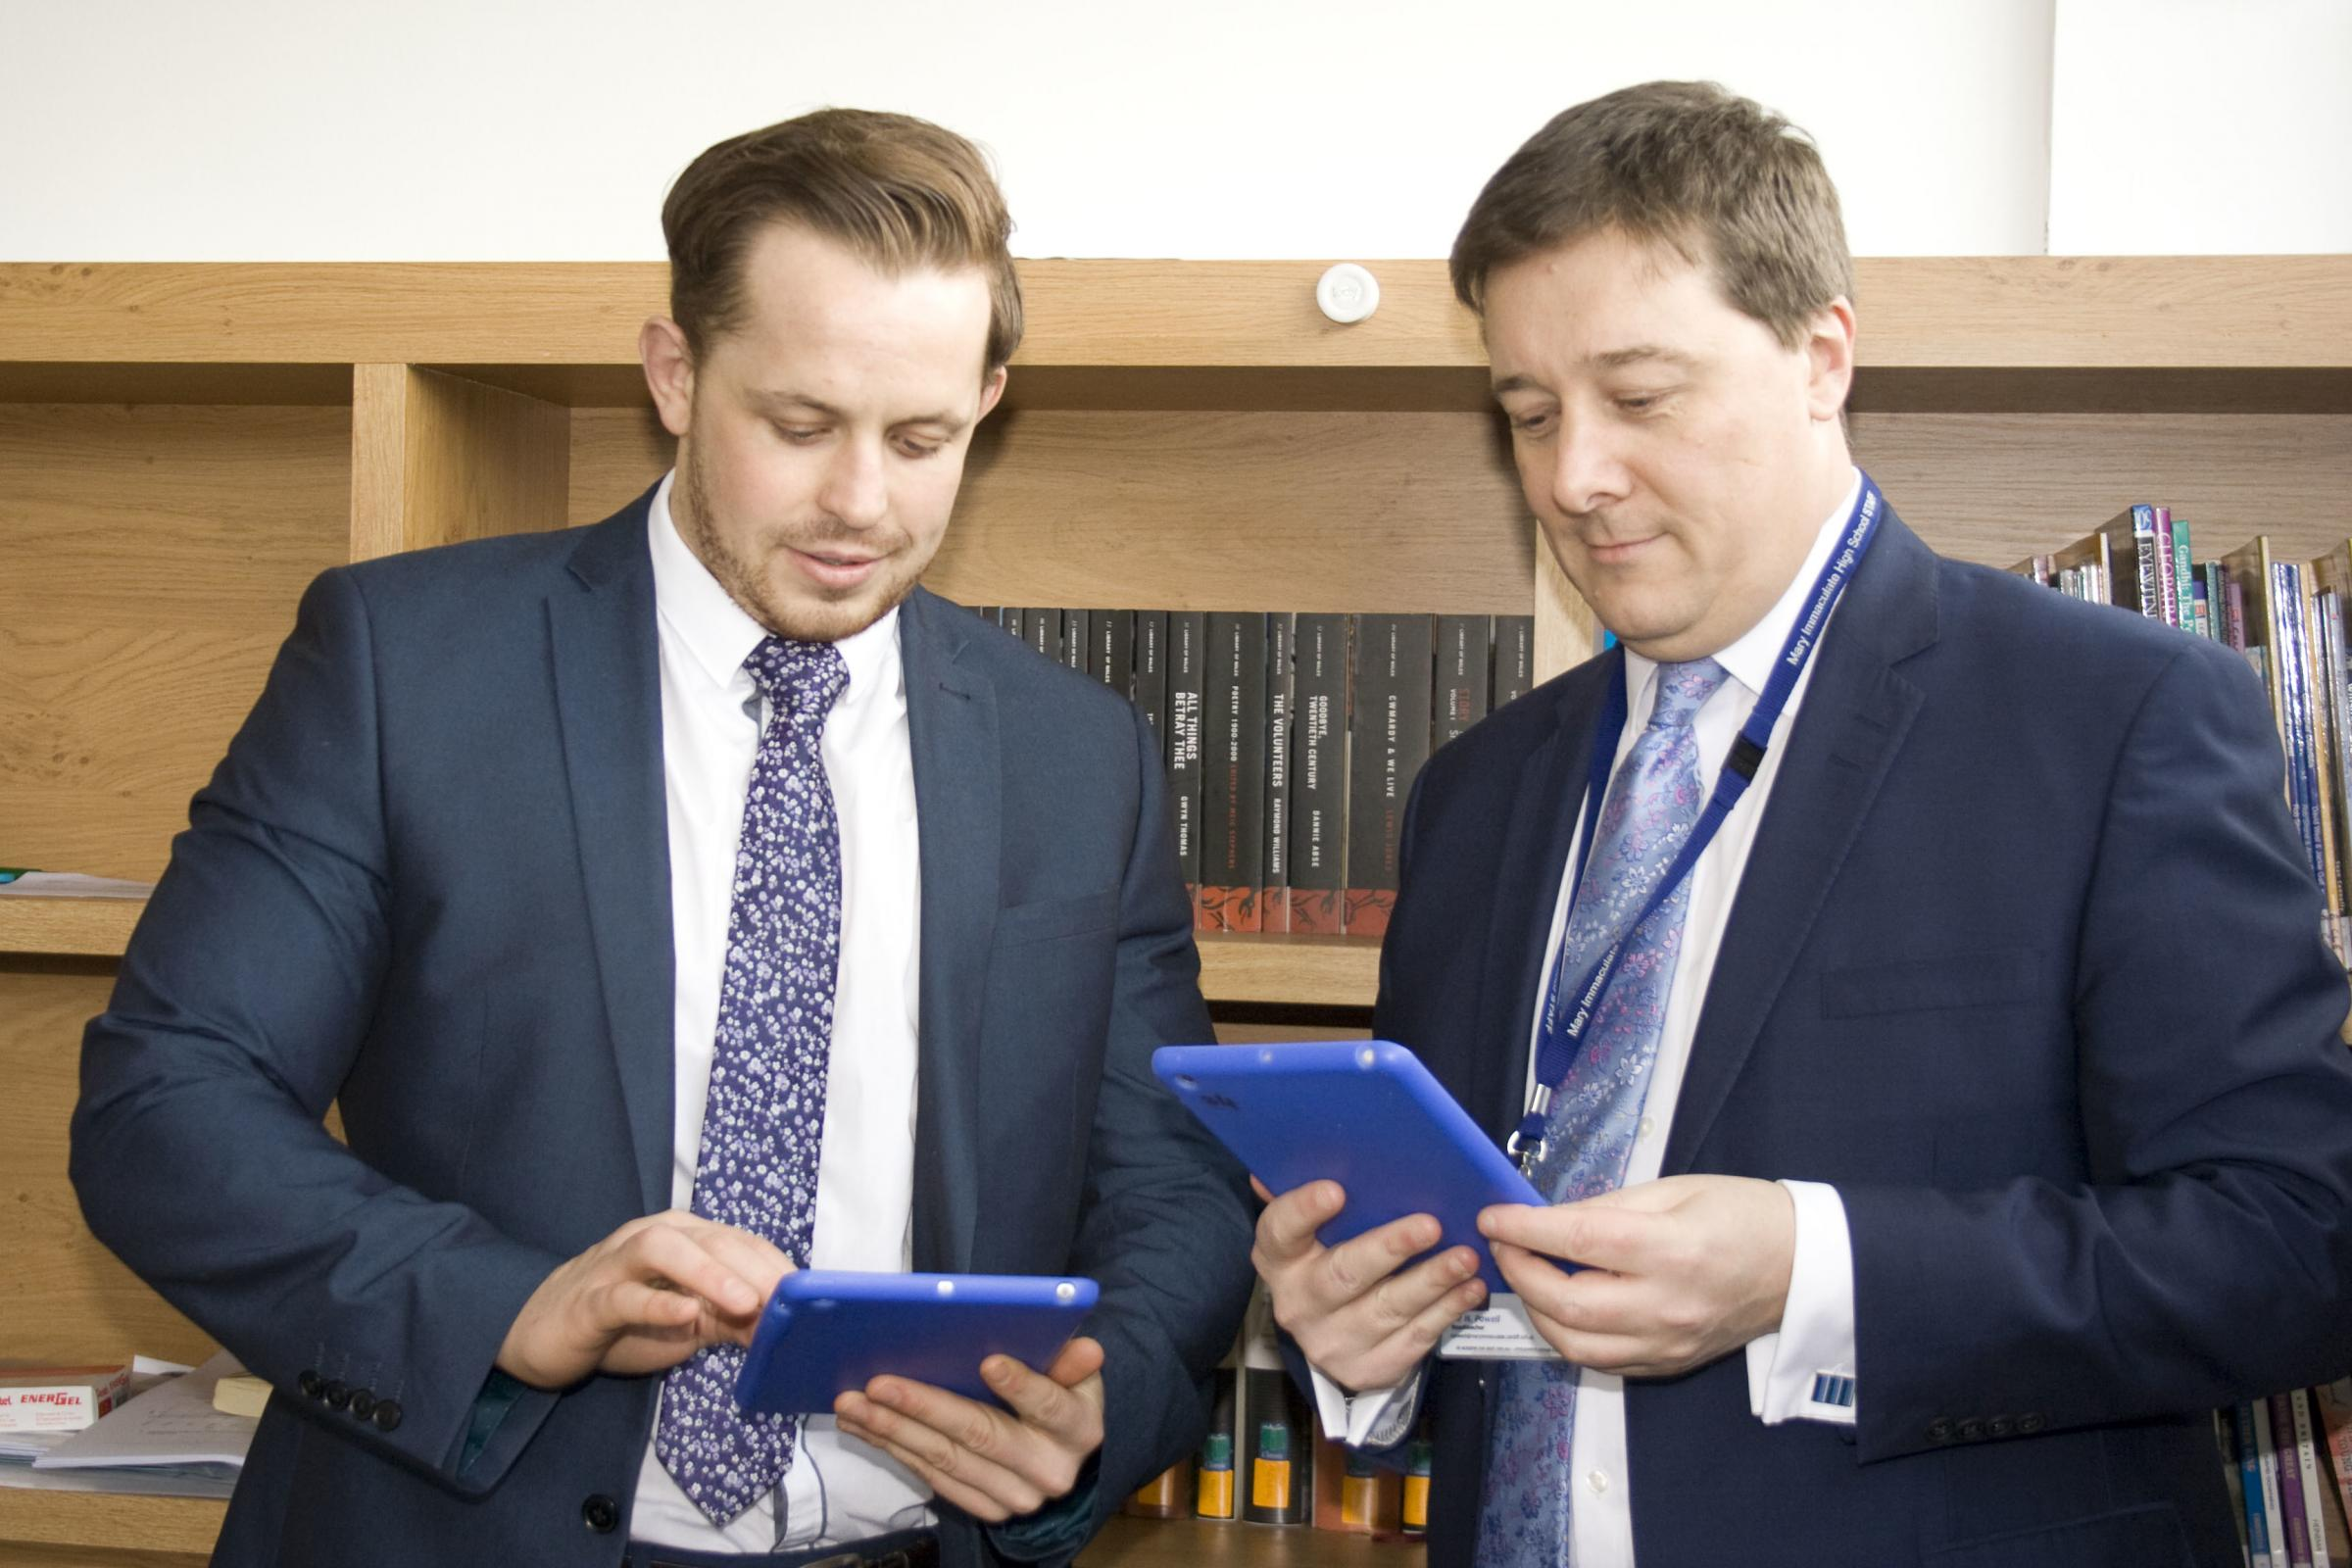 Mr Corcoran and Mr Powell try out the new technology